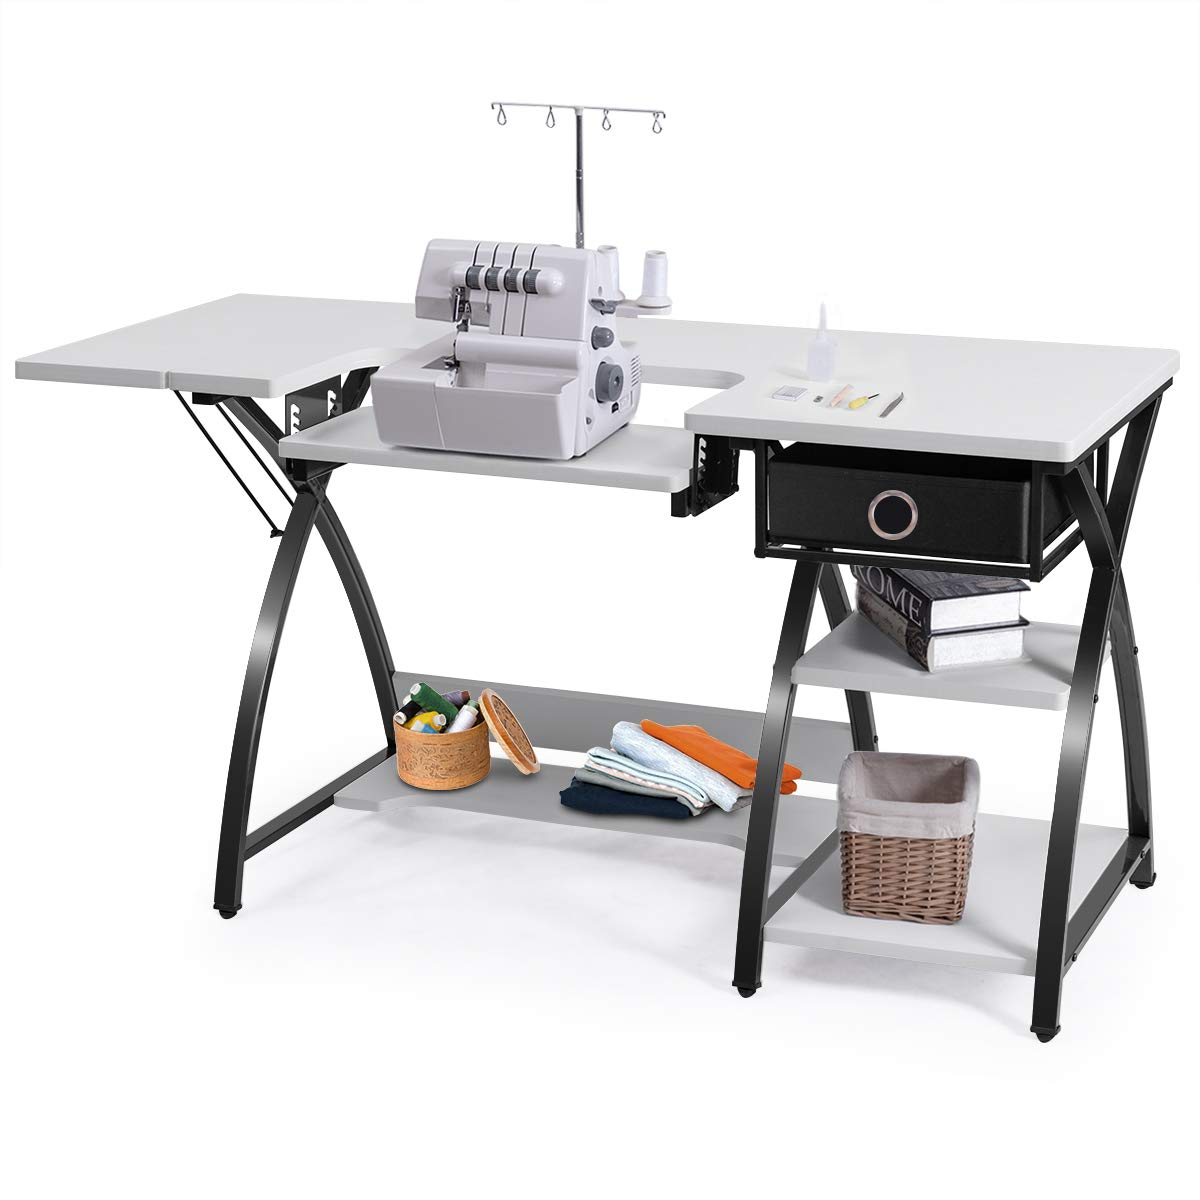 Costway Home Indoor Adjustable Sewing Craft Table Sewing Machine Sturdy Computer Desk with Drawer & Shleves (with Drawer) by COSTWAY